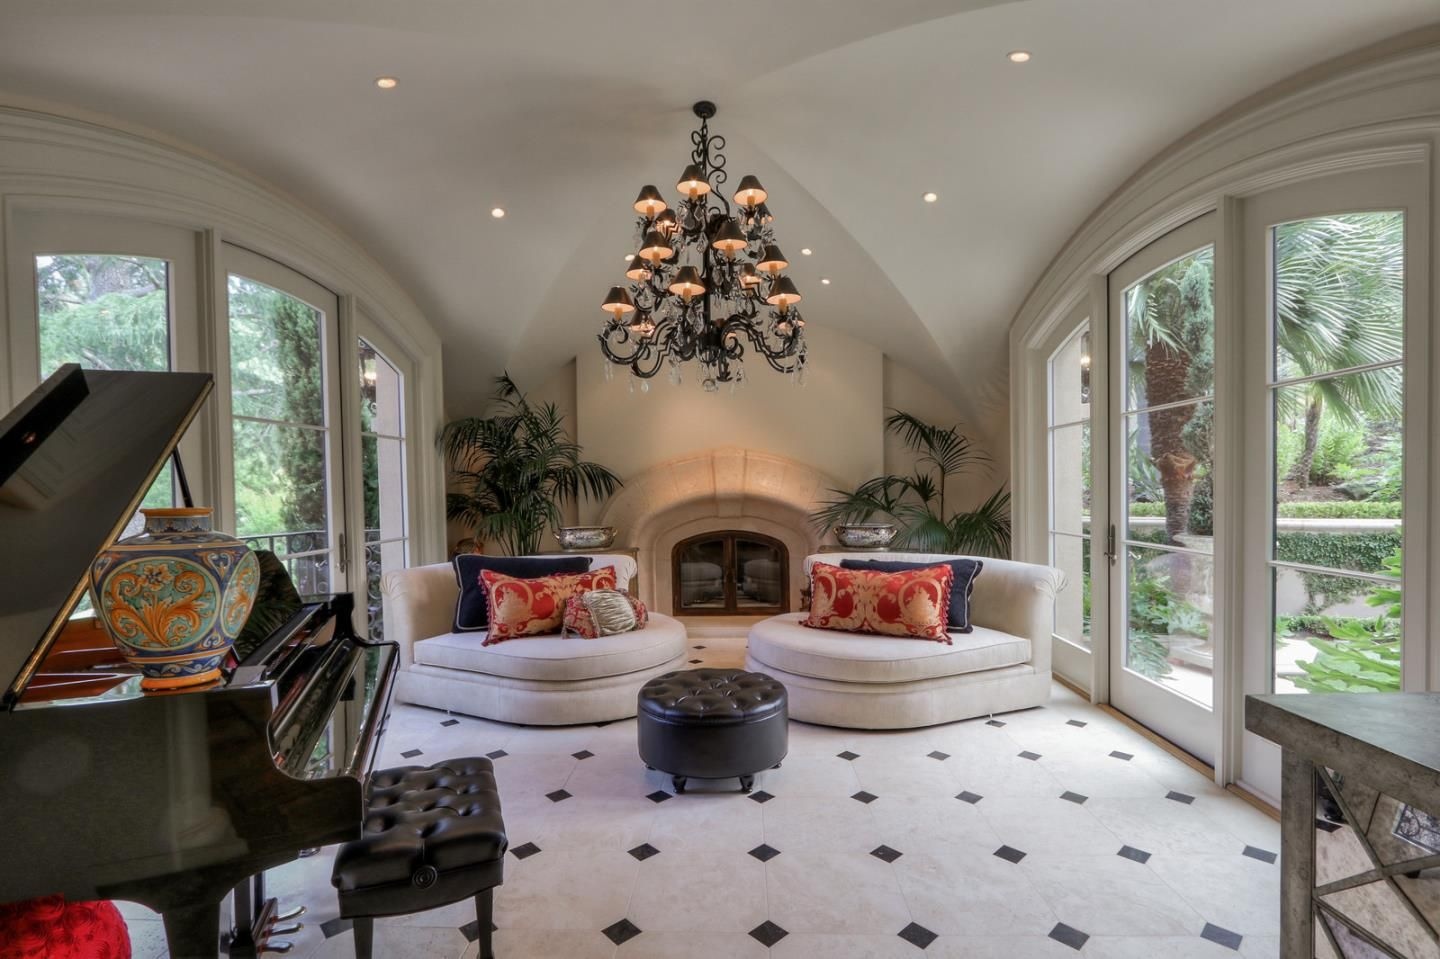 109 Sund Avenue Los Gatos, CA | $7,495,000 6 Beds | 5.5 Baths | 6,492 SQFT  For questions or for private showing contact:   Carolyn Botts  Compass P: (650) 207-0246 E: carolynb@apr.com     #homeforsaleinLosGatos #homesforsale #LosGatoshomes #LosGatos #houseforsale #forsale #realtor #compass  #realestate #luxuryrealestate #realestateagent #dreamhome #milliondollarhomes #ForSale #realestatemarket #homes #findhome #beautifulhome #firsttimehomebuyers #homebuyers  #housingmarket #siliconvalleyhomes #